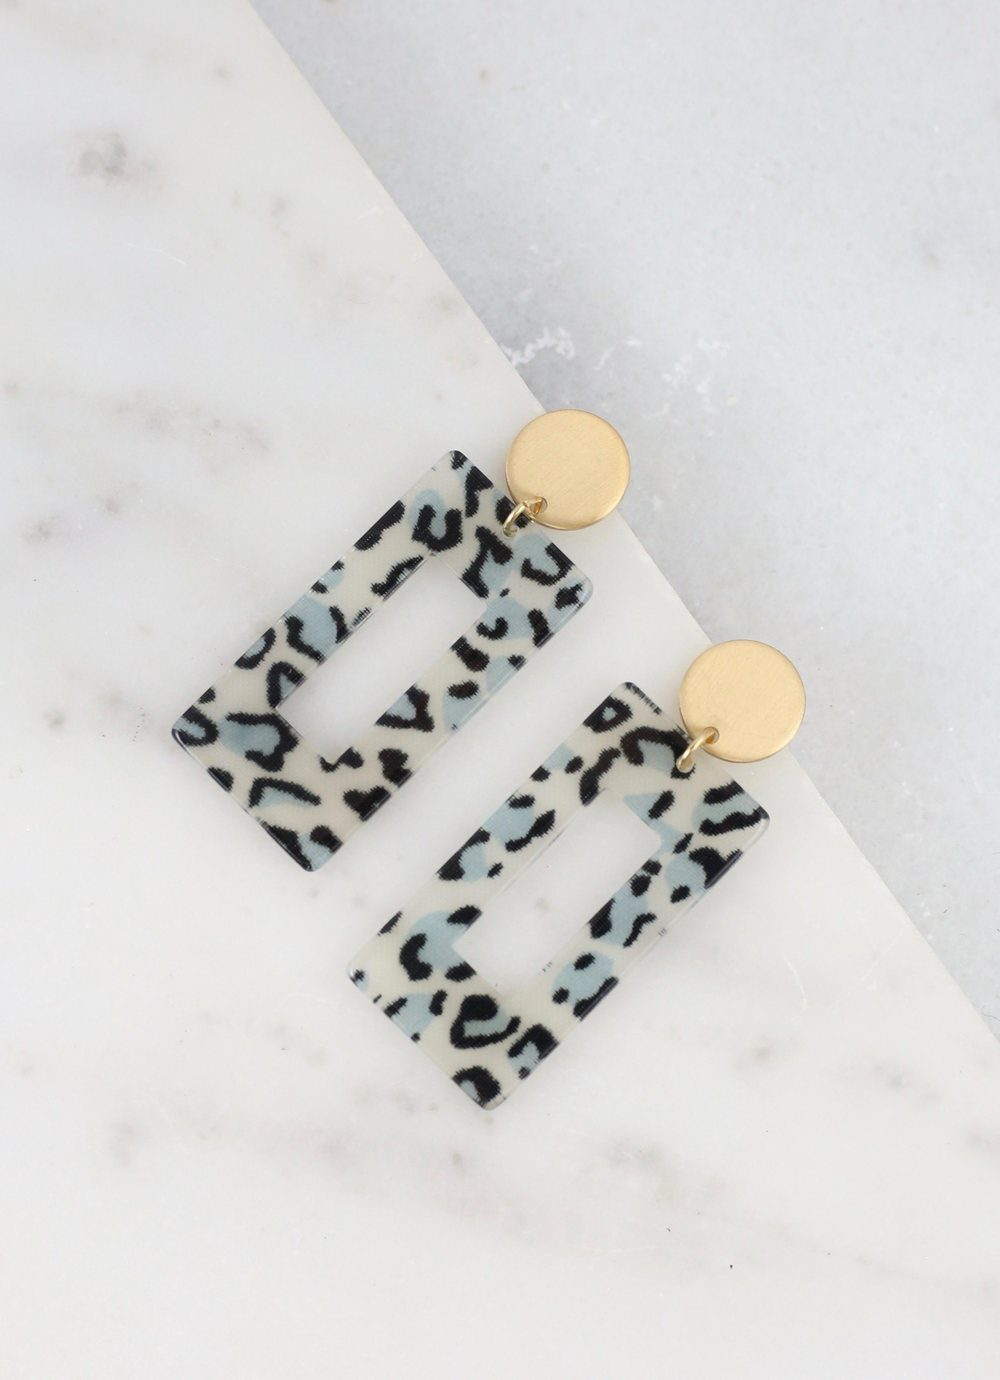 Bitsy Black Leopard Resin Earring - Caroline Hill